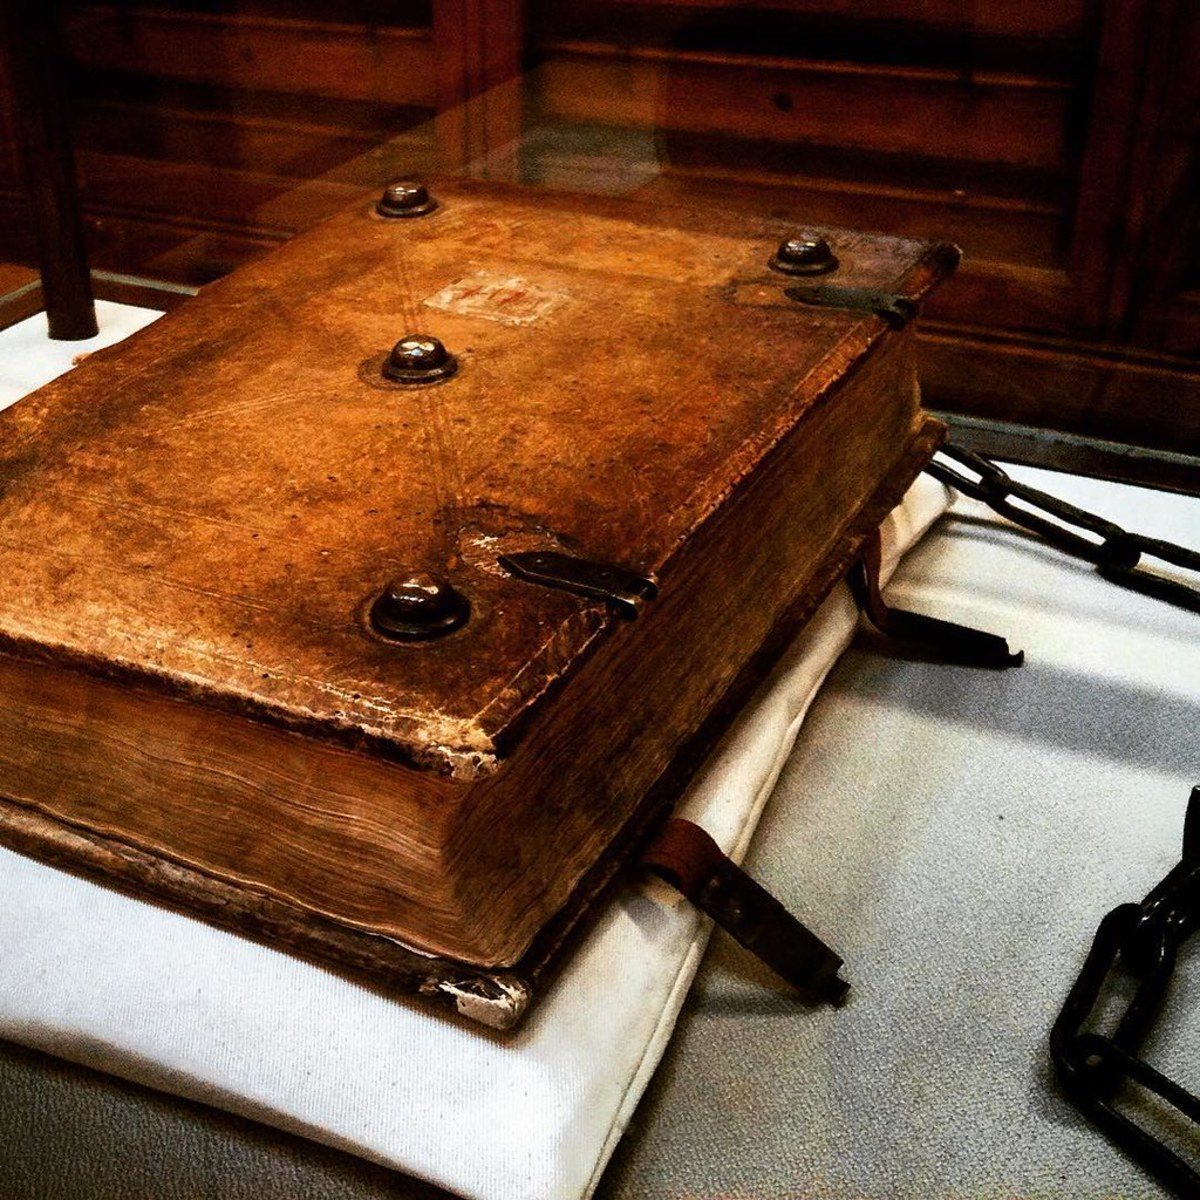 A traditional grimoire is not always a practical or safe option.